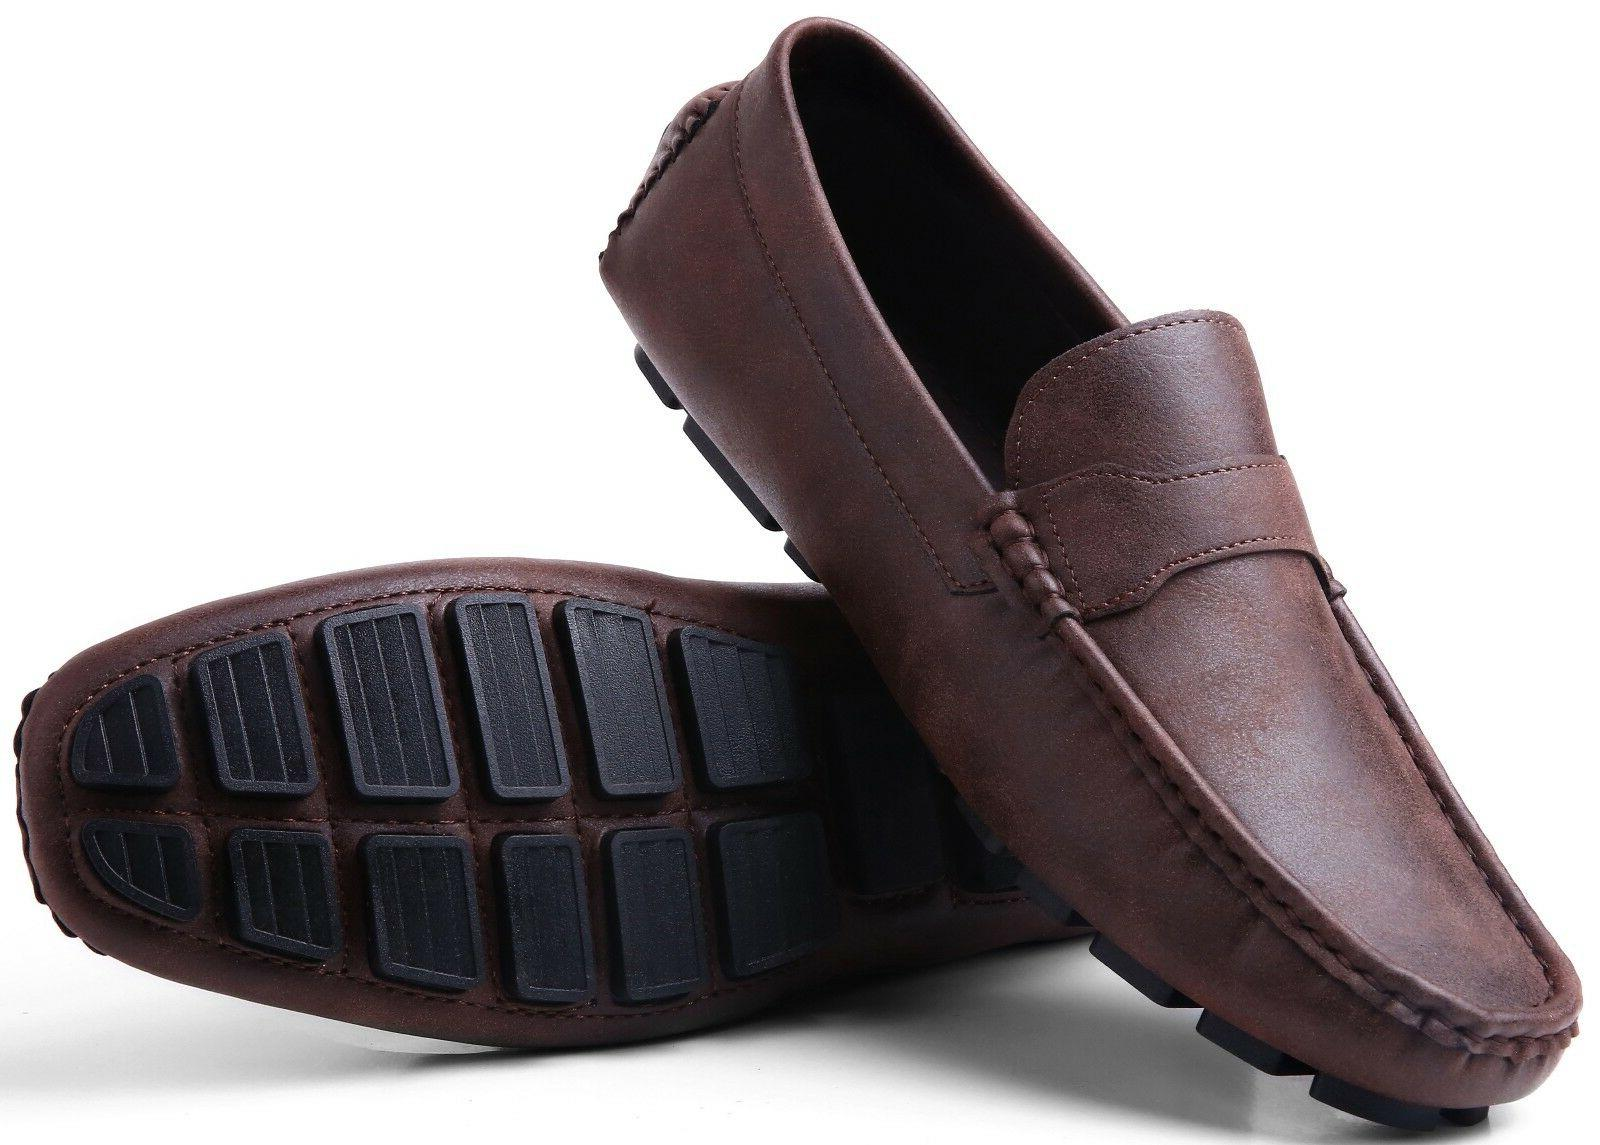 driving shoes for men casual moccasin loafers